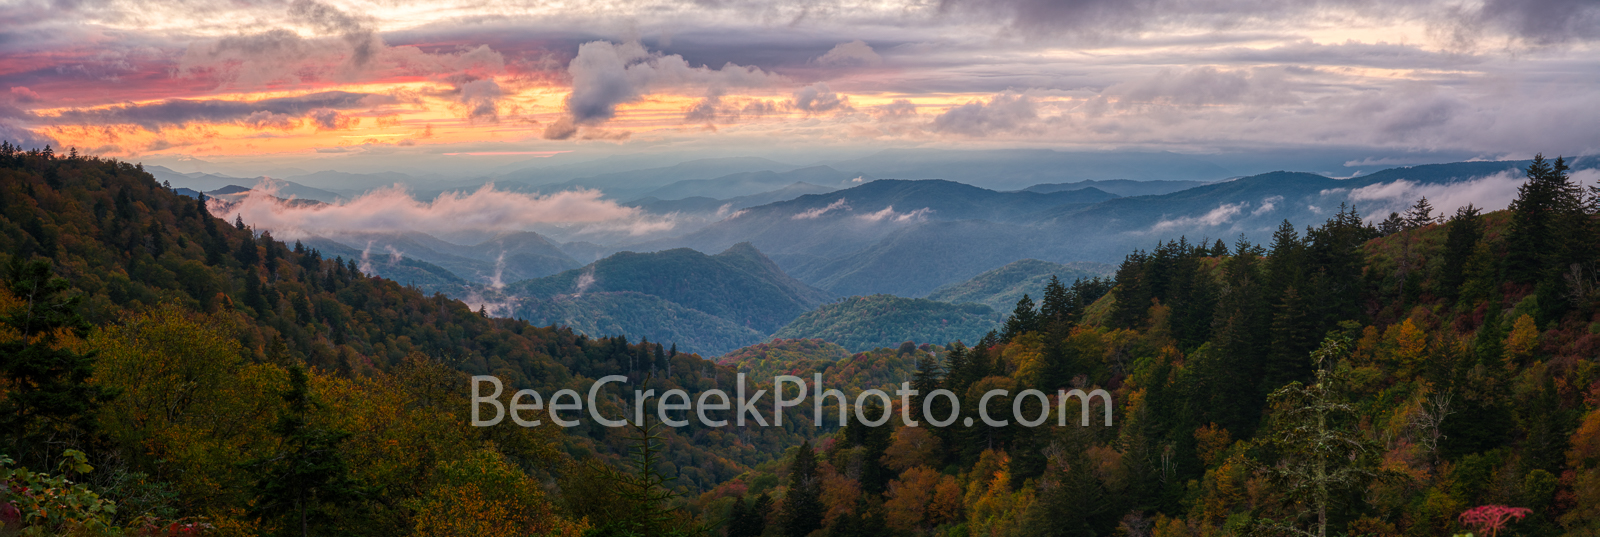 Sunset, Blue Ridge Mountains, smoky mountains, blue ridge parkway, smoky national park, north carolina, Tennessee, Cherokee, pano, panorama, great smoky mountains, landscape, applachians, mountains, s, photo